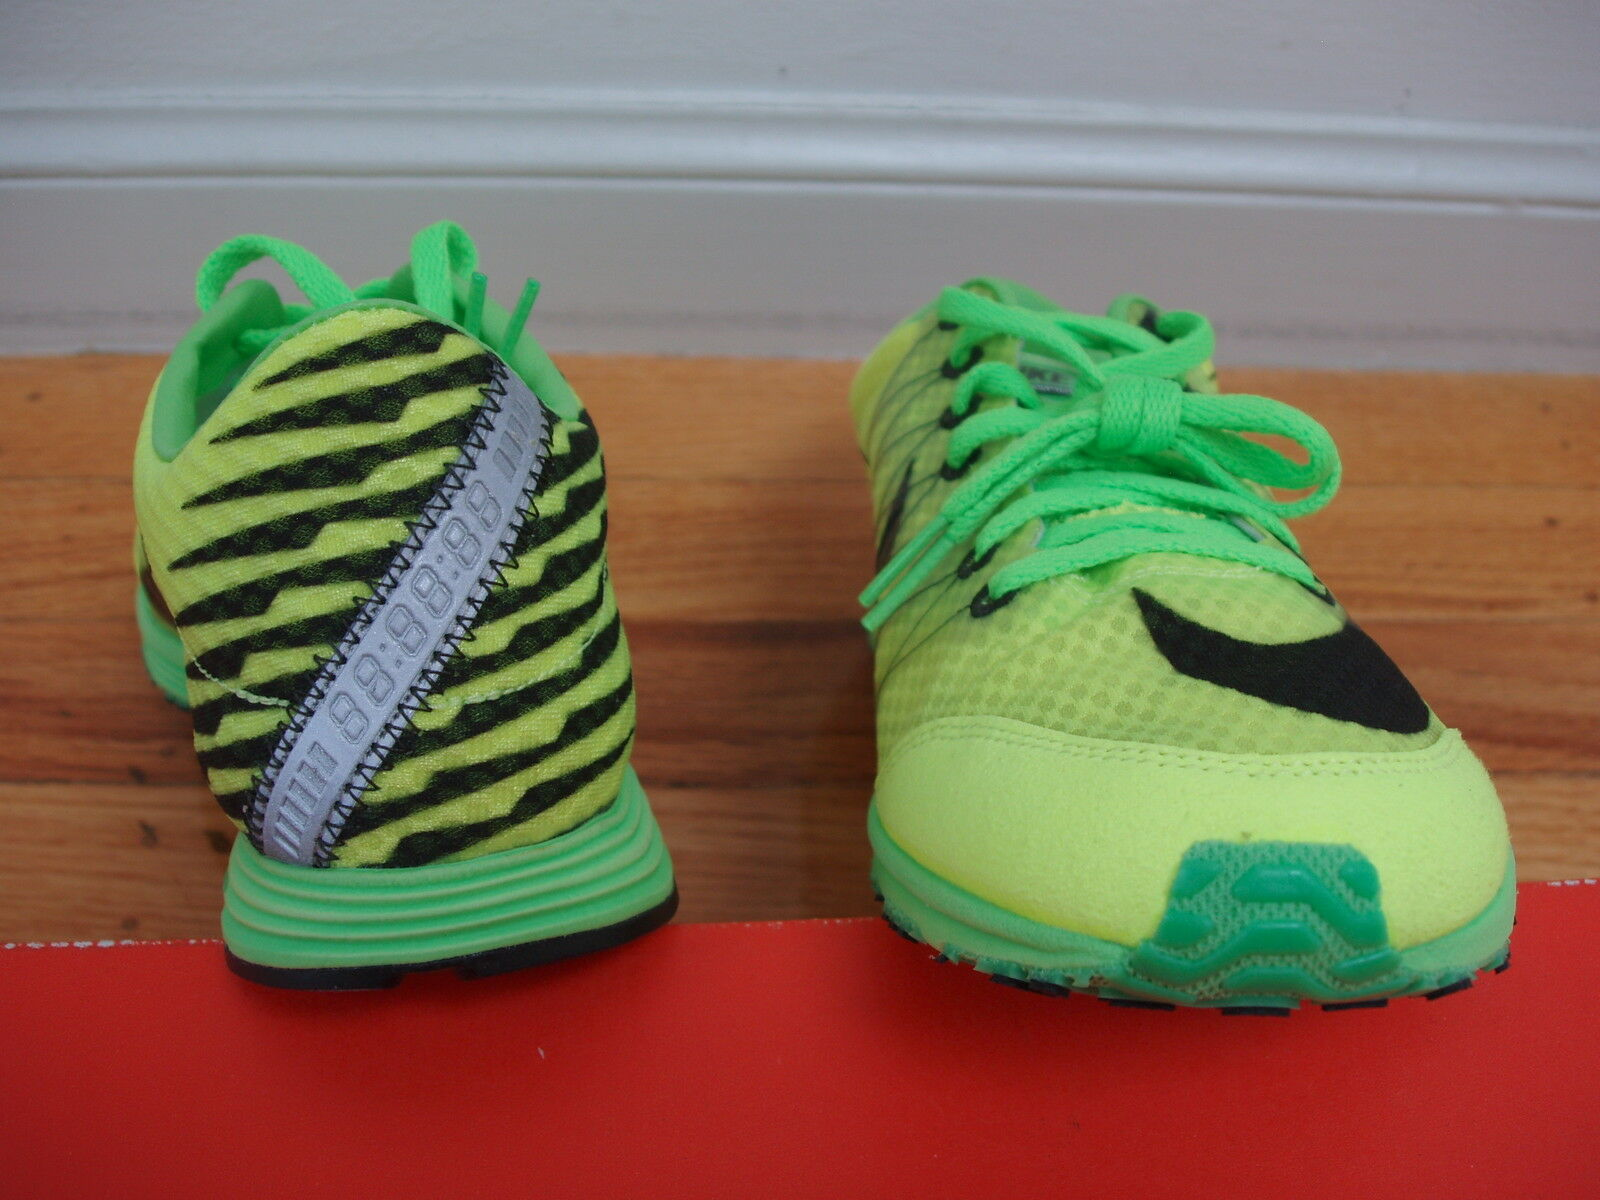 outlet store d74d1 ac1f4 ... New flaw Nike Lunarspider R3 running shoes mens mens mens 8  womens 9.5  neon ...